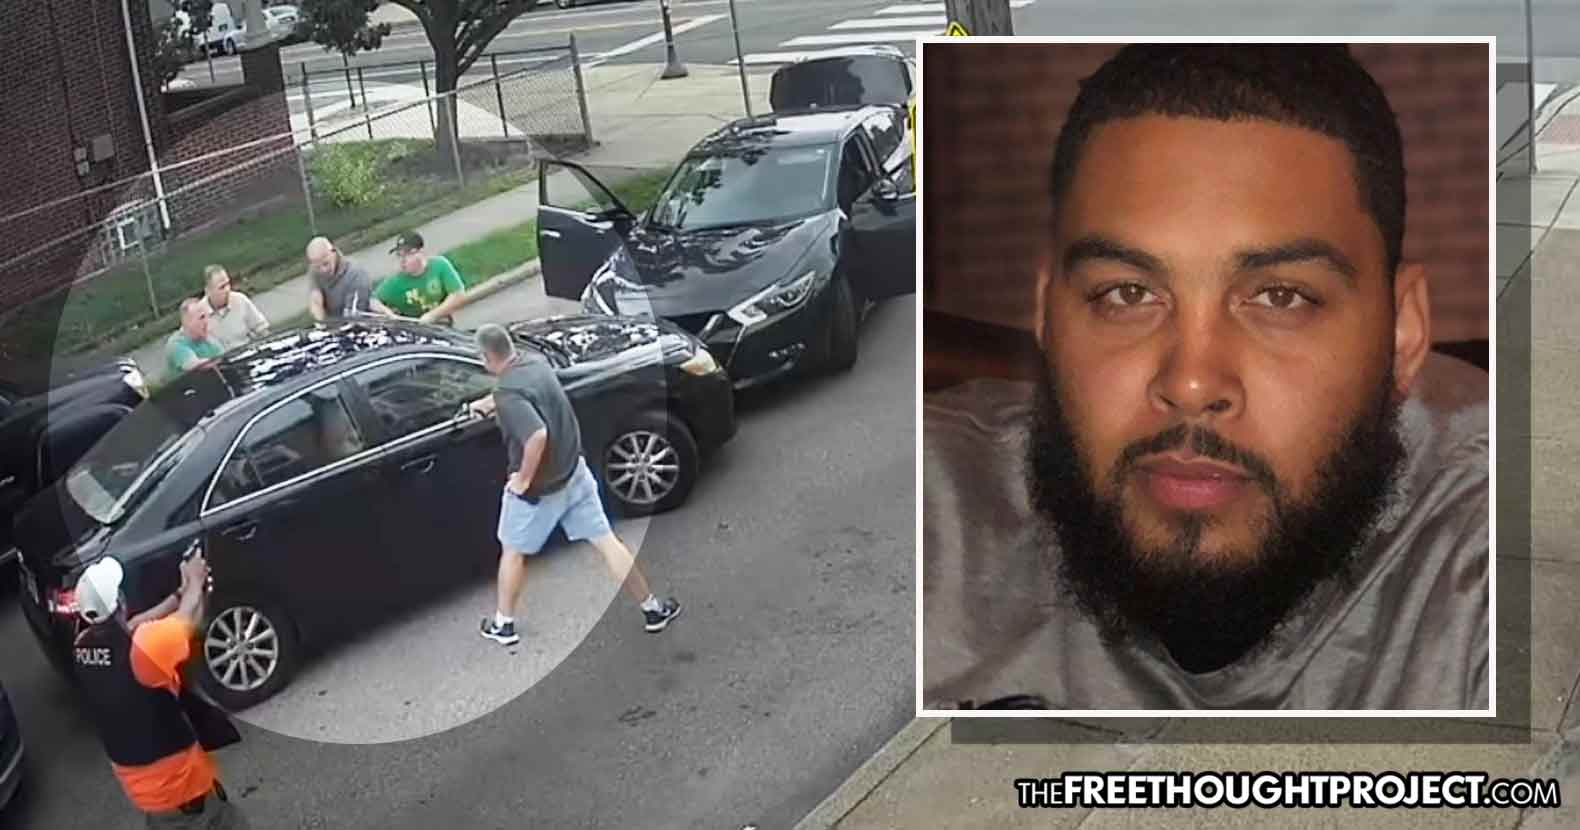 WATCH: Plainclothes Cops Surround Unarmed Father of 3 and Murder Him